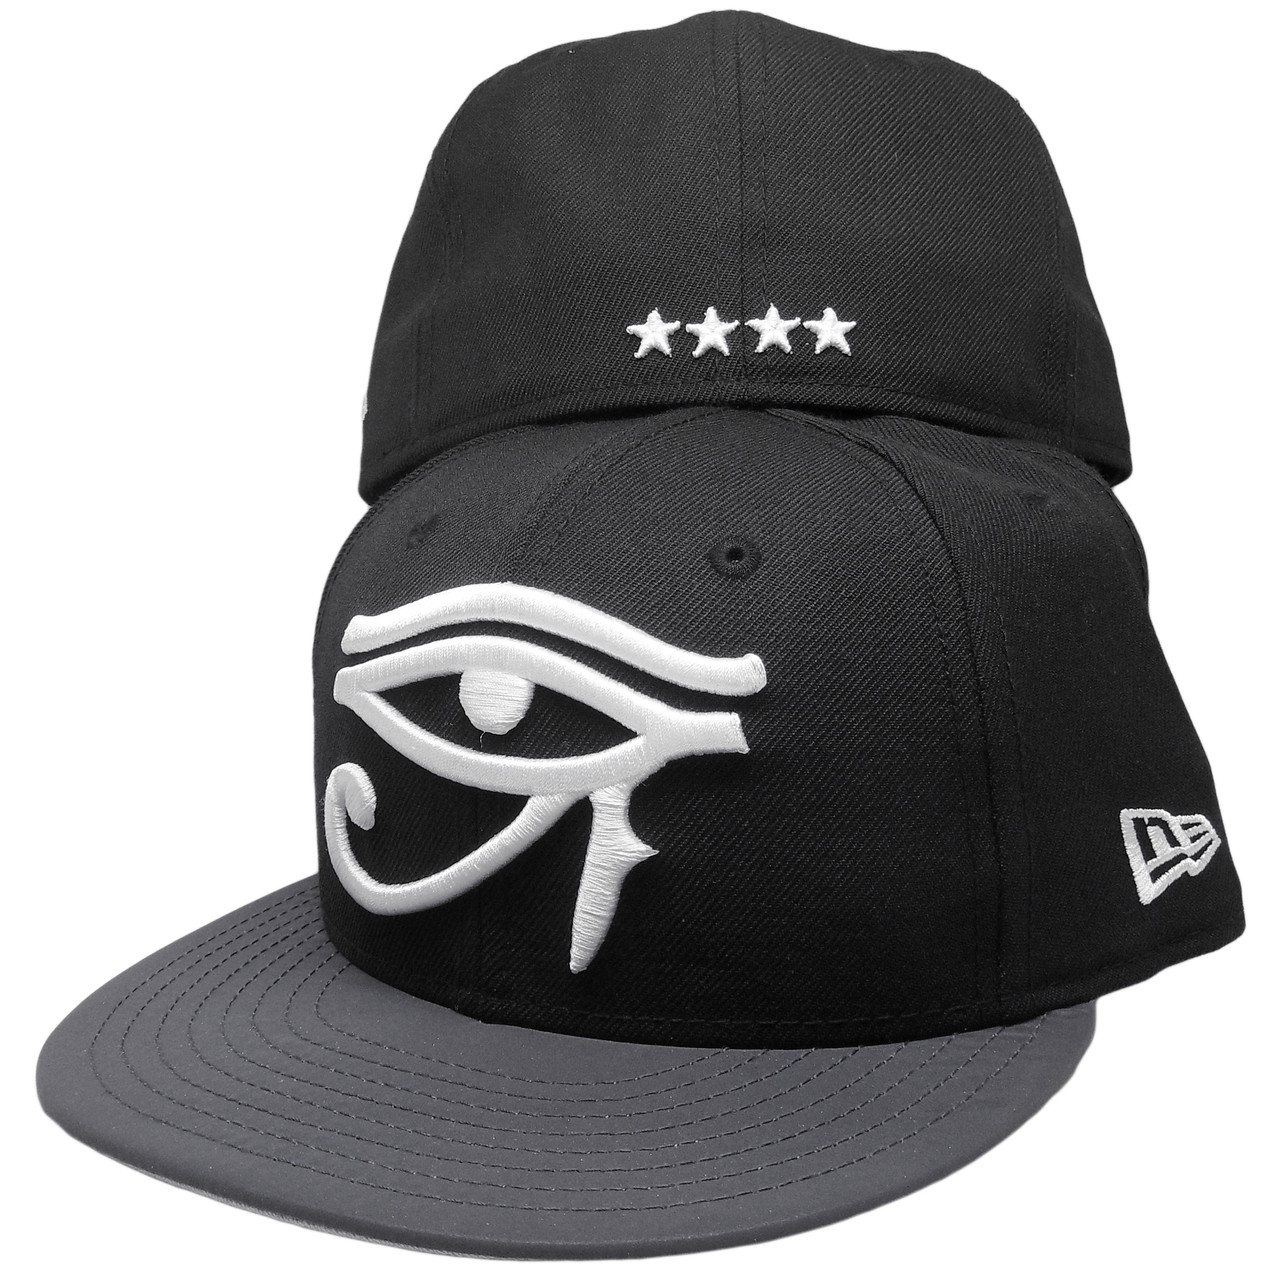 Eye of Horus New Era Custom 59Fifty Fitted Hat - Black 8c103f1ab22